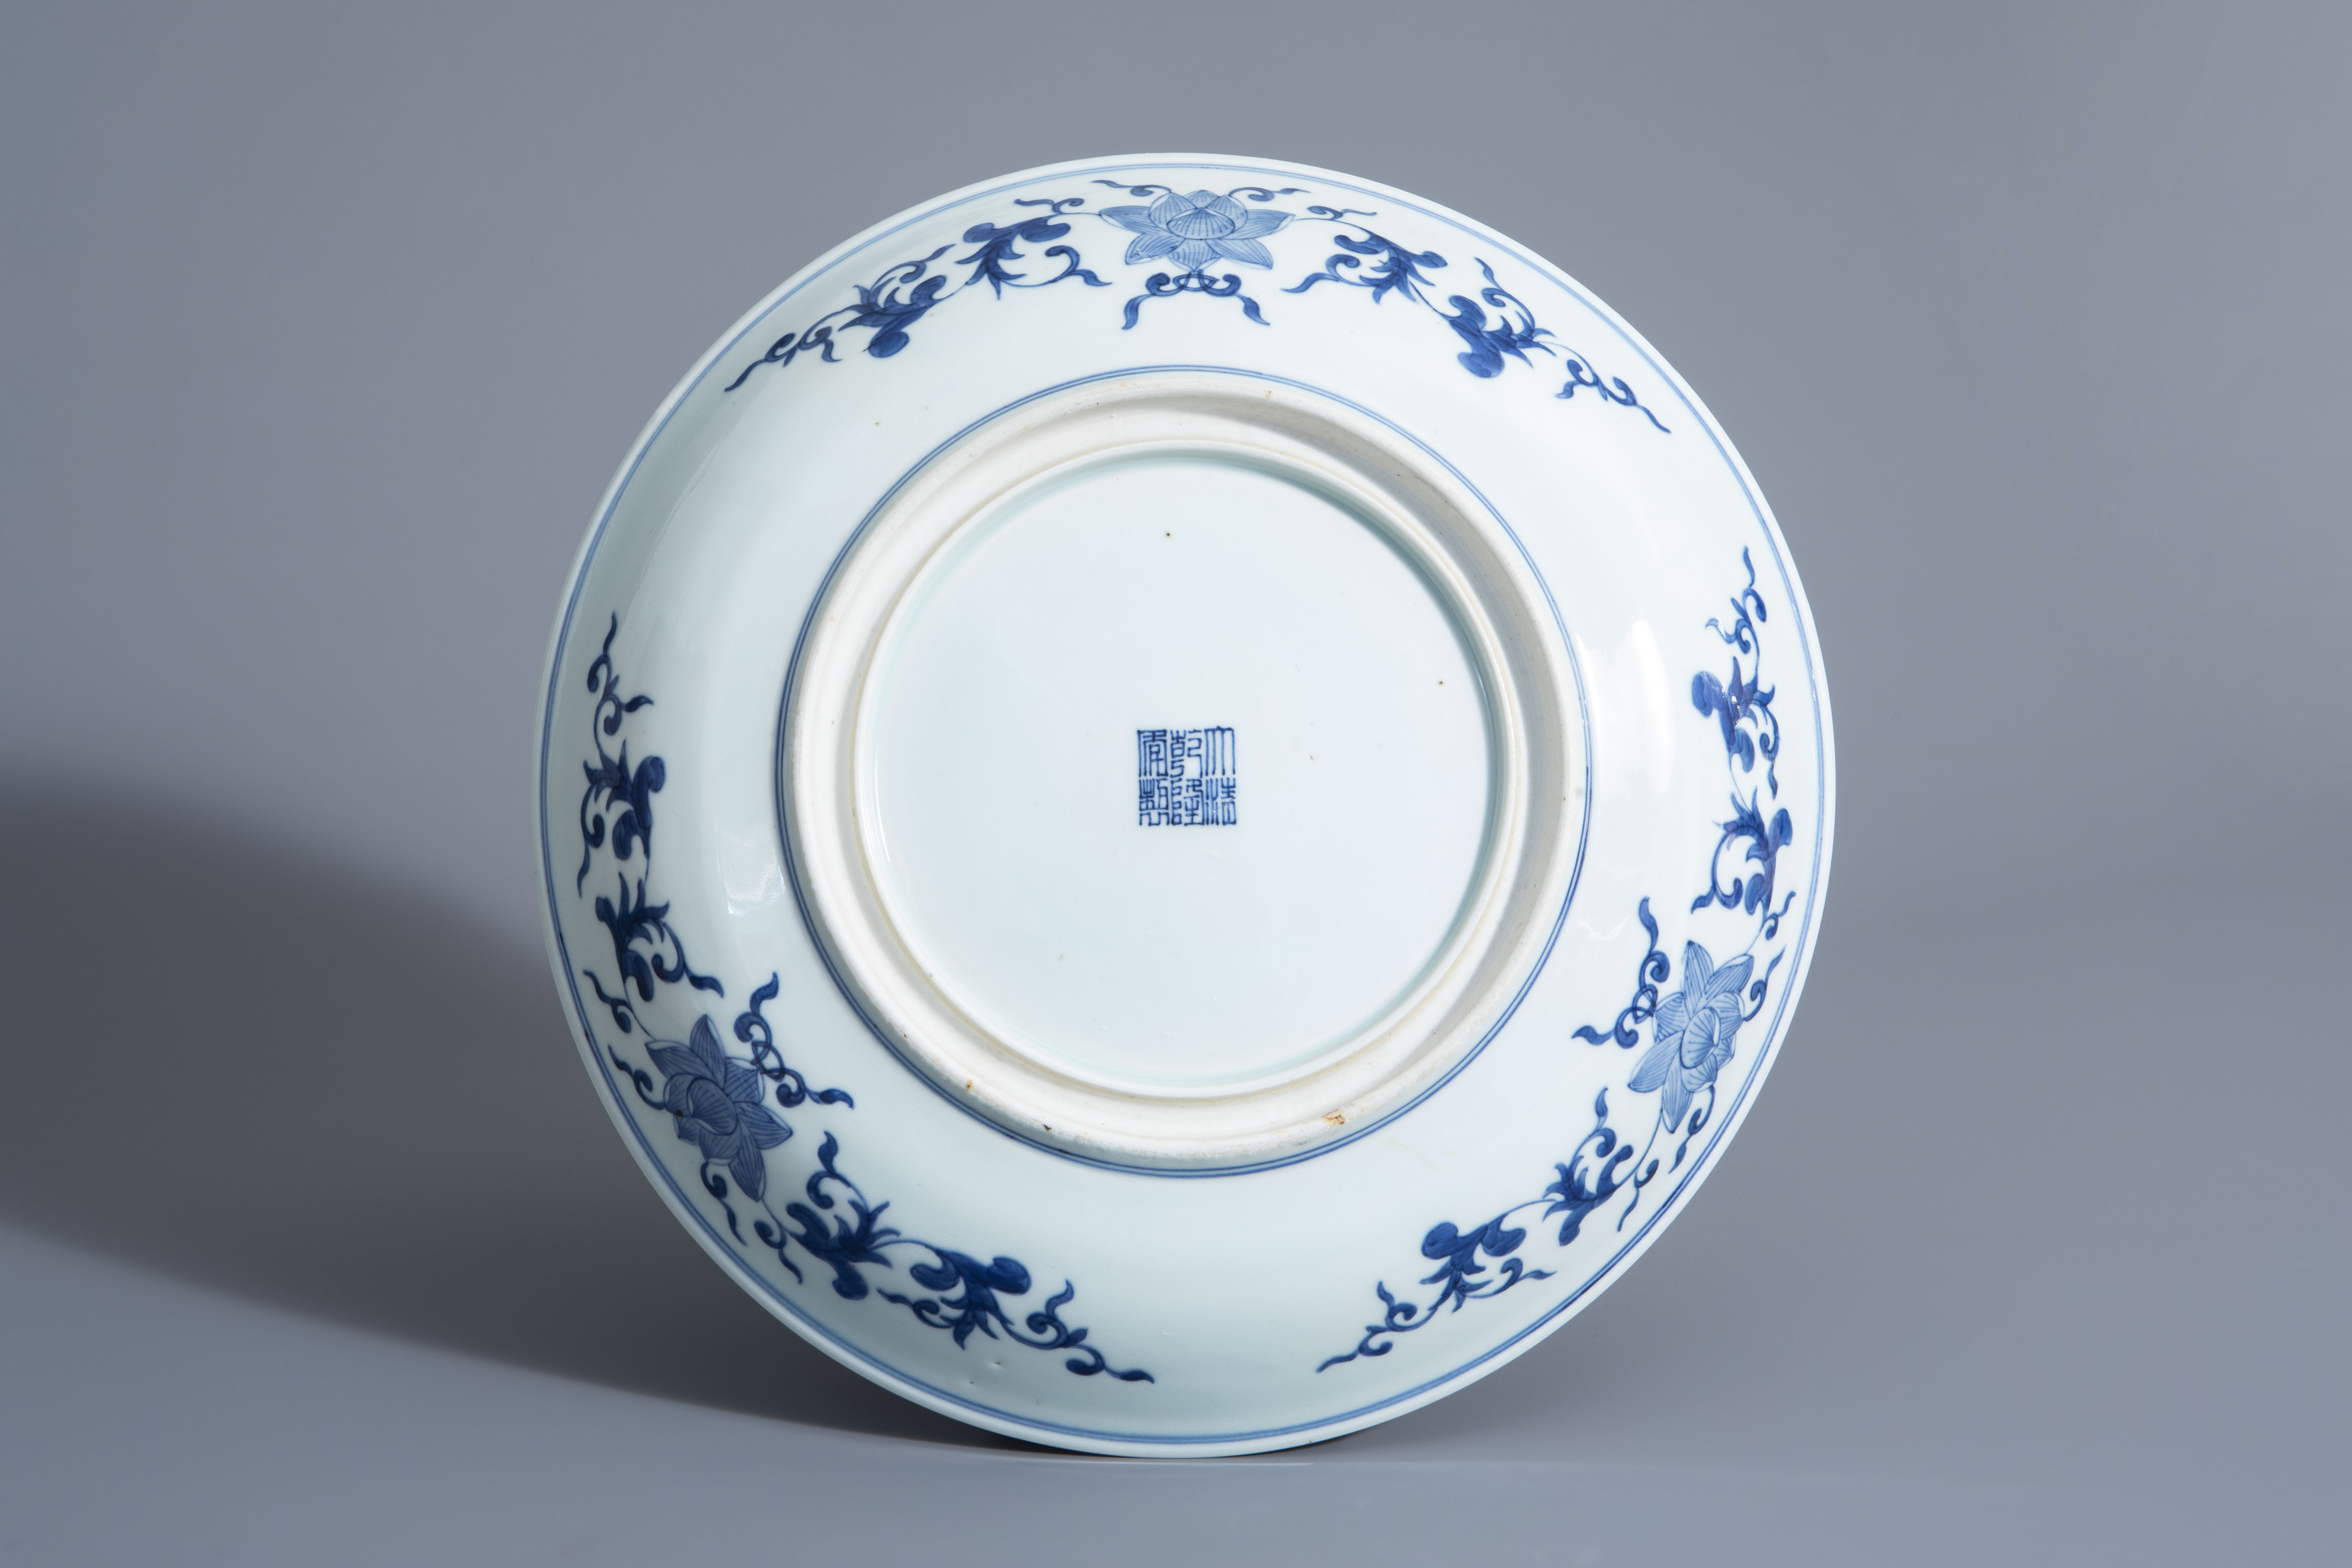 A Chinese blue and white 'Romance of the Western Chamber' charger, Qianlong mark, Republic, 20th C. - Image 2 of 2